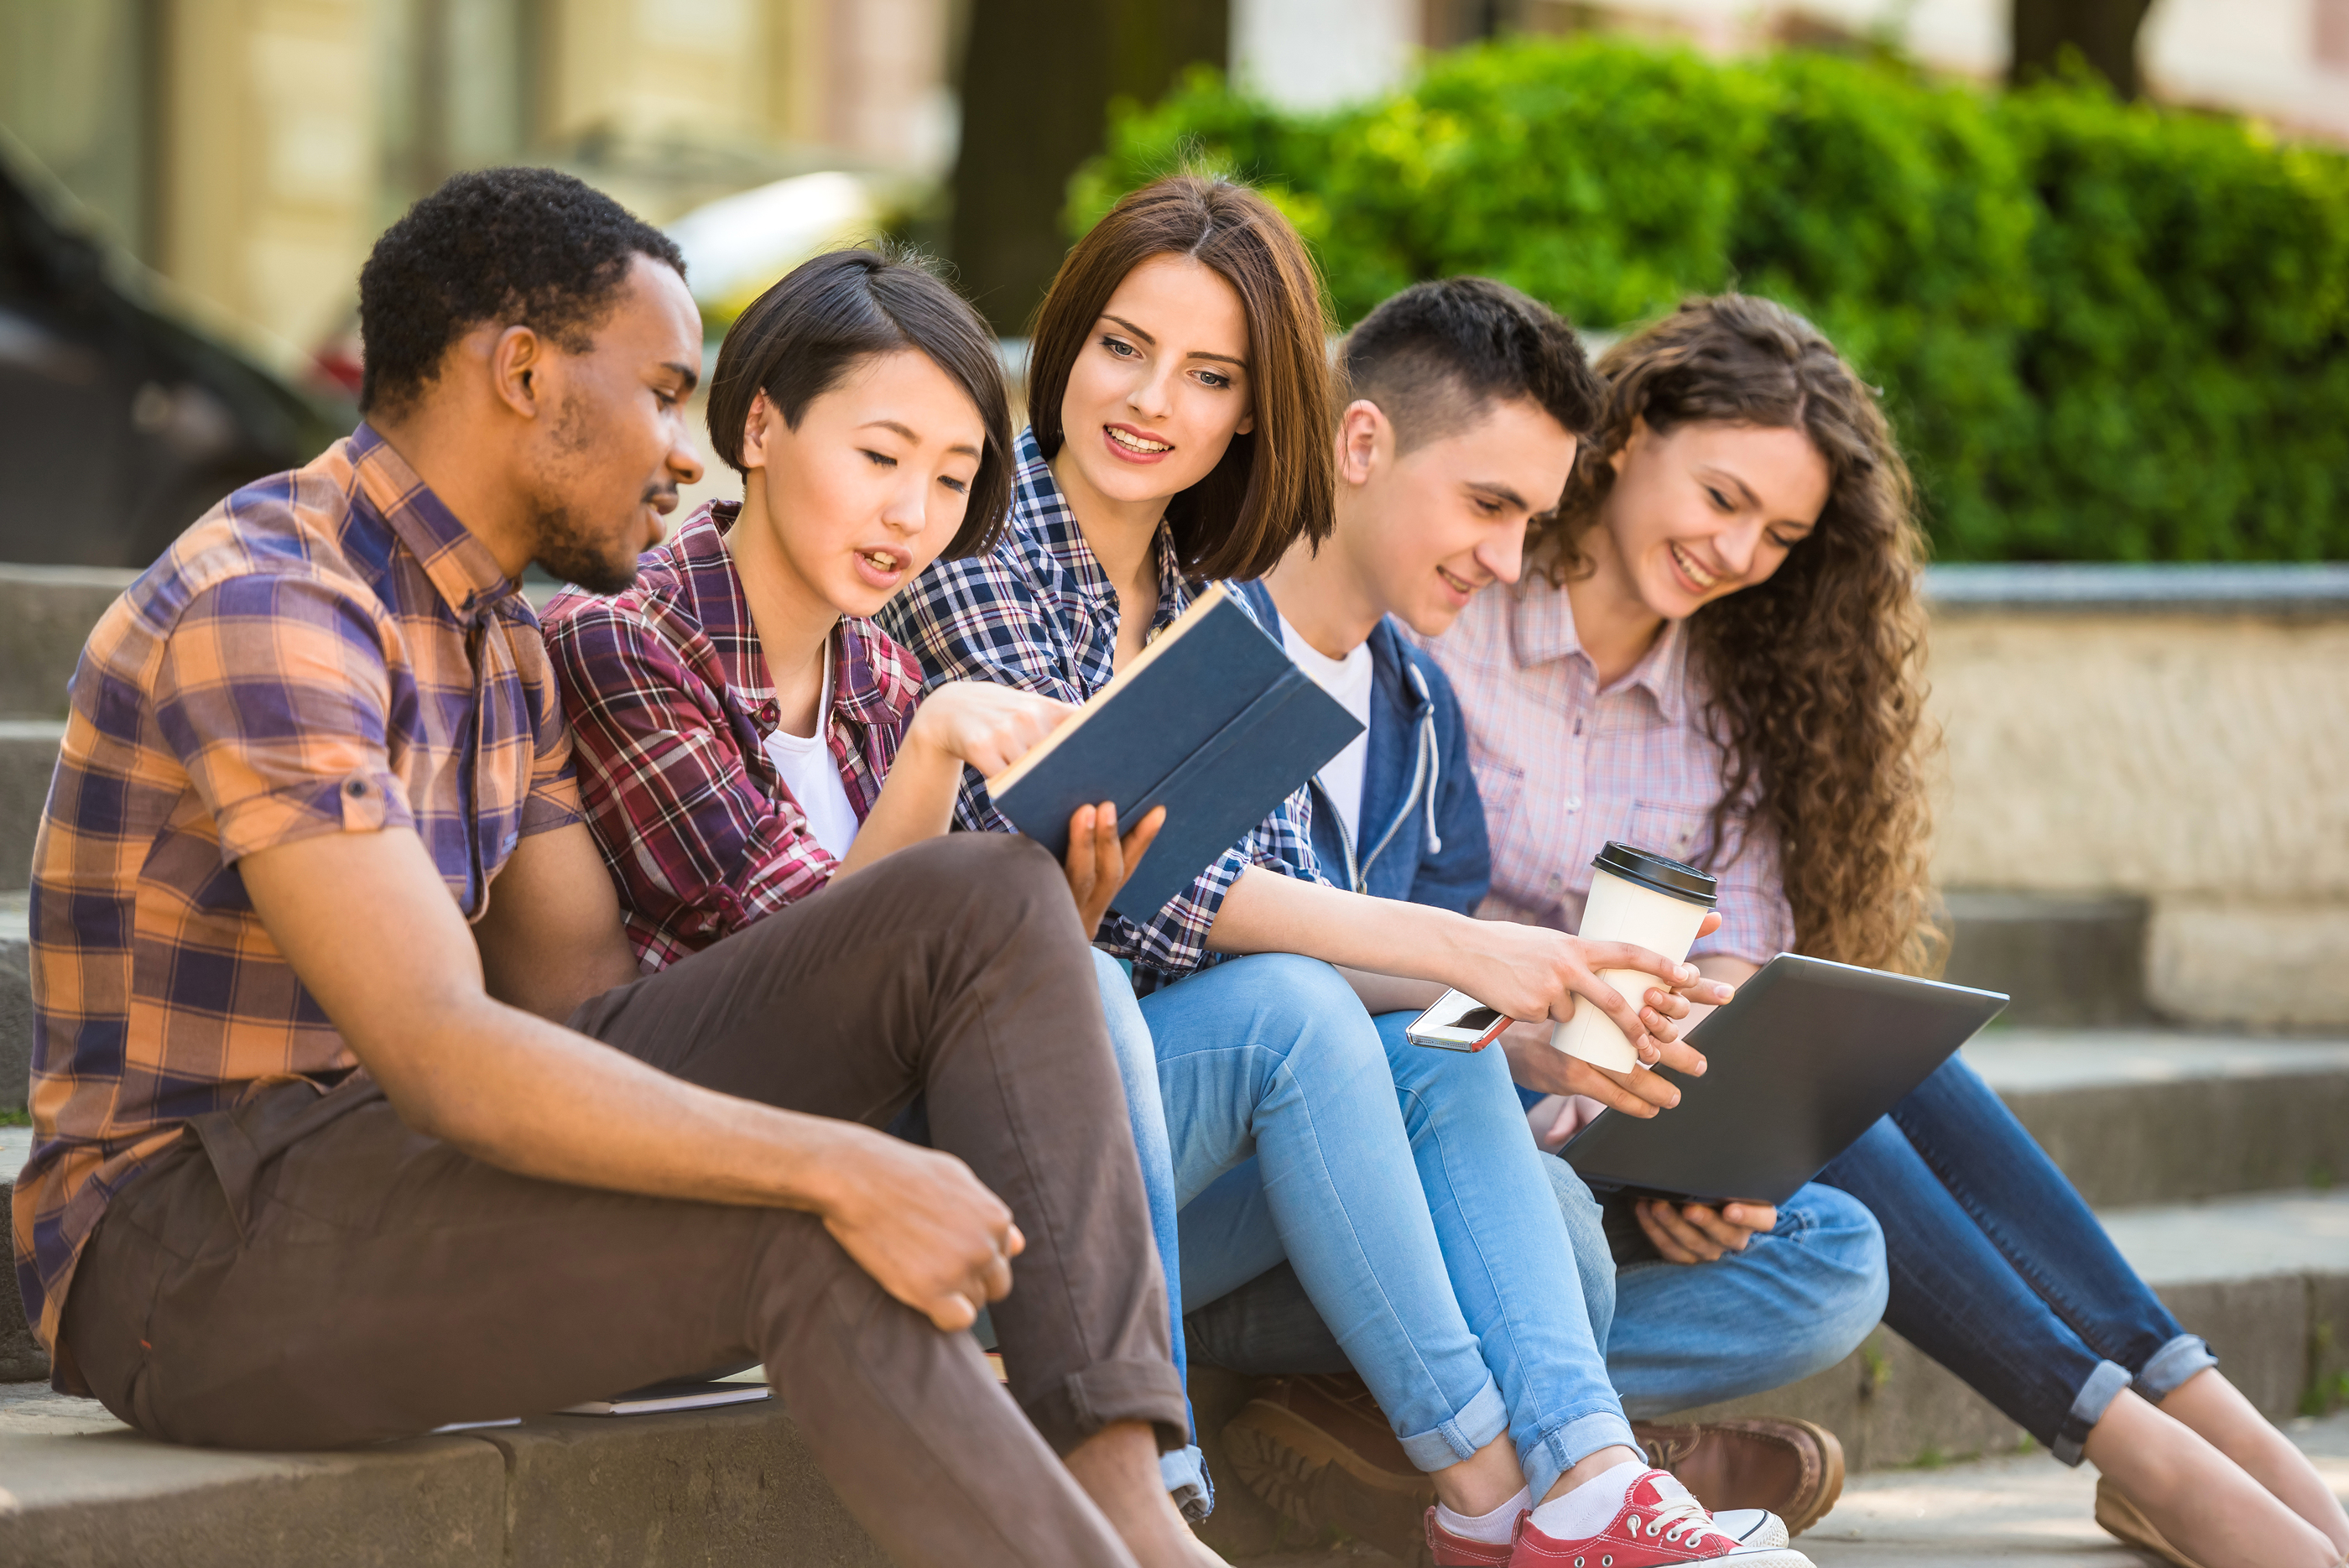 thesis on millennial students Literature on teaching and learning in college classrooms is reviewed and findings are discussed through a generational lens from assumptions about generations of students, recommendations for enhancing student learning--especially for millennial students.